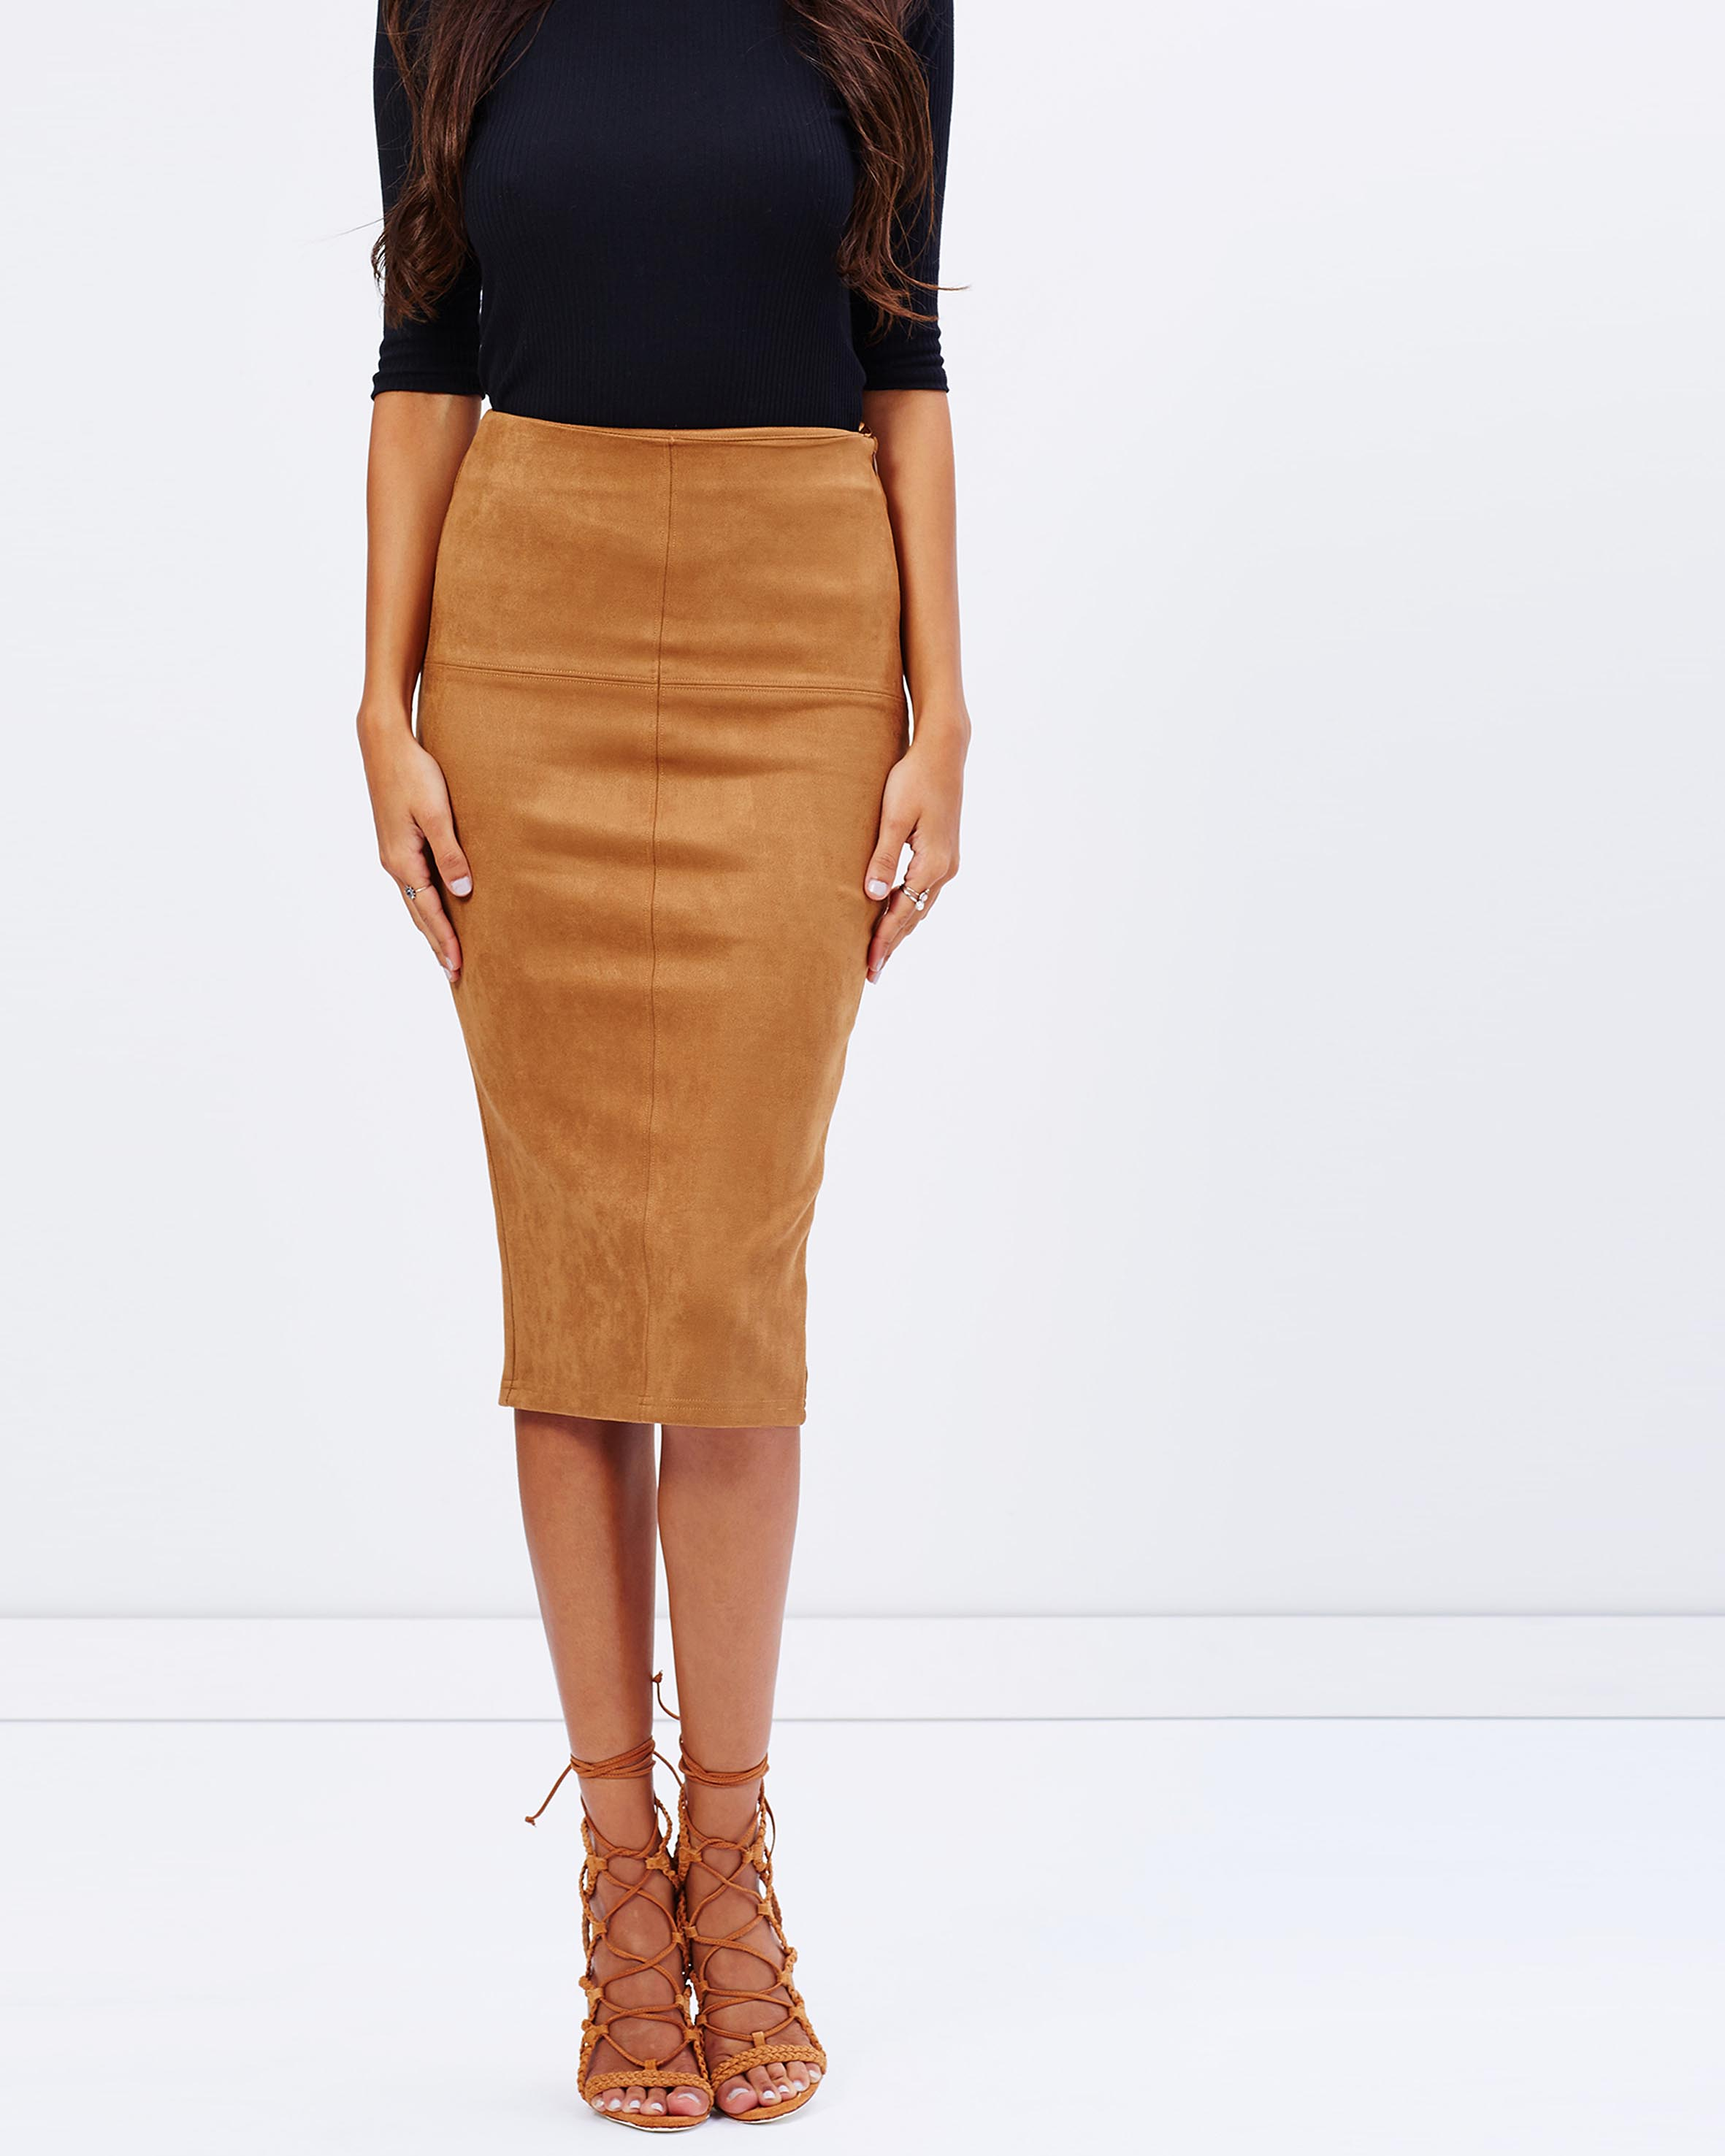 Tan Leather Skirt Australia - Redskirtz